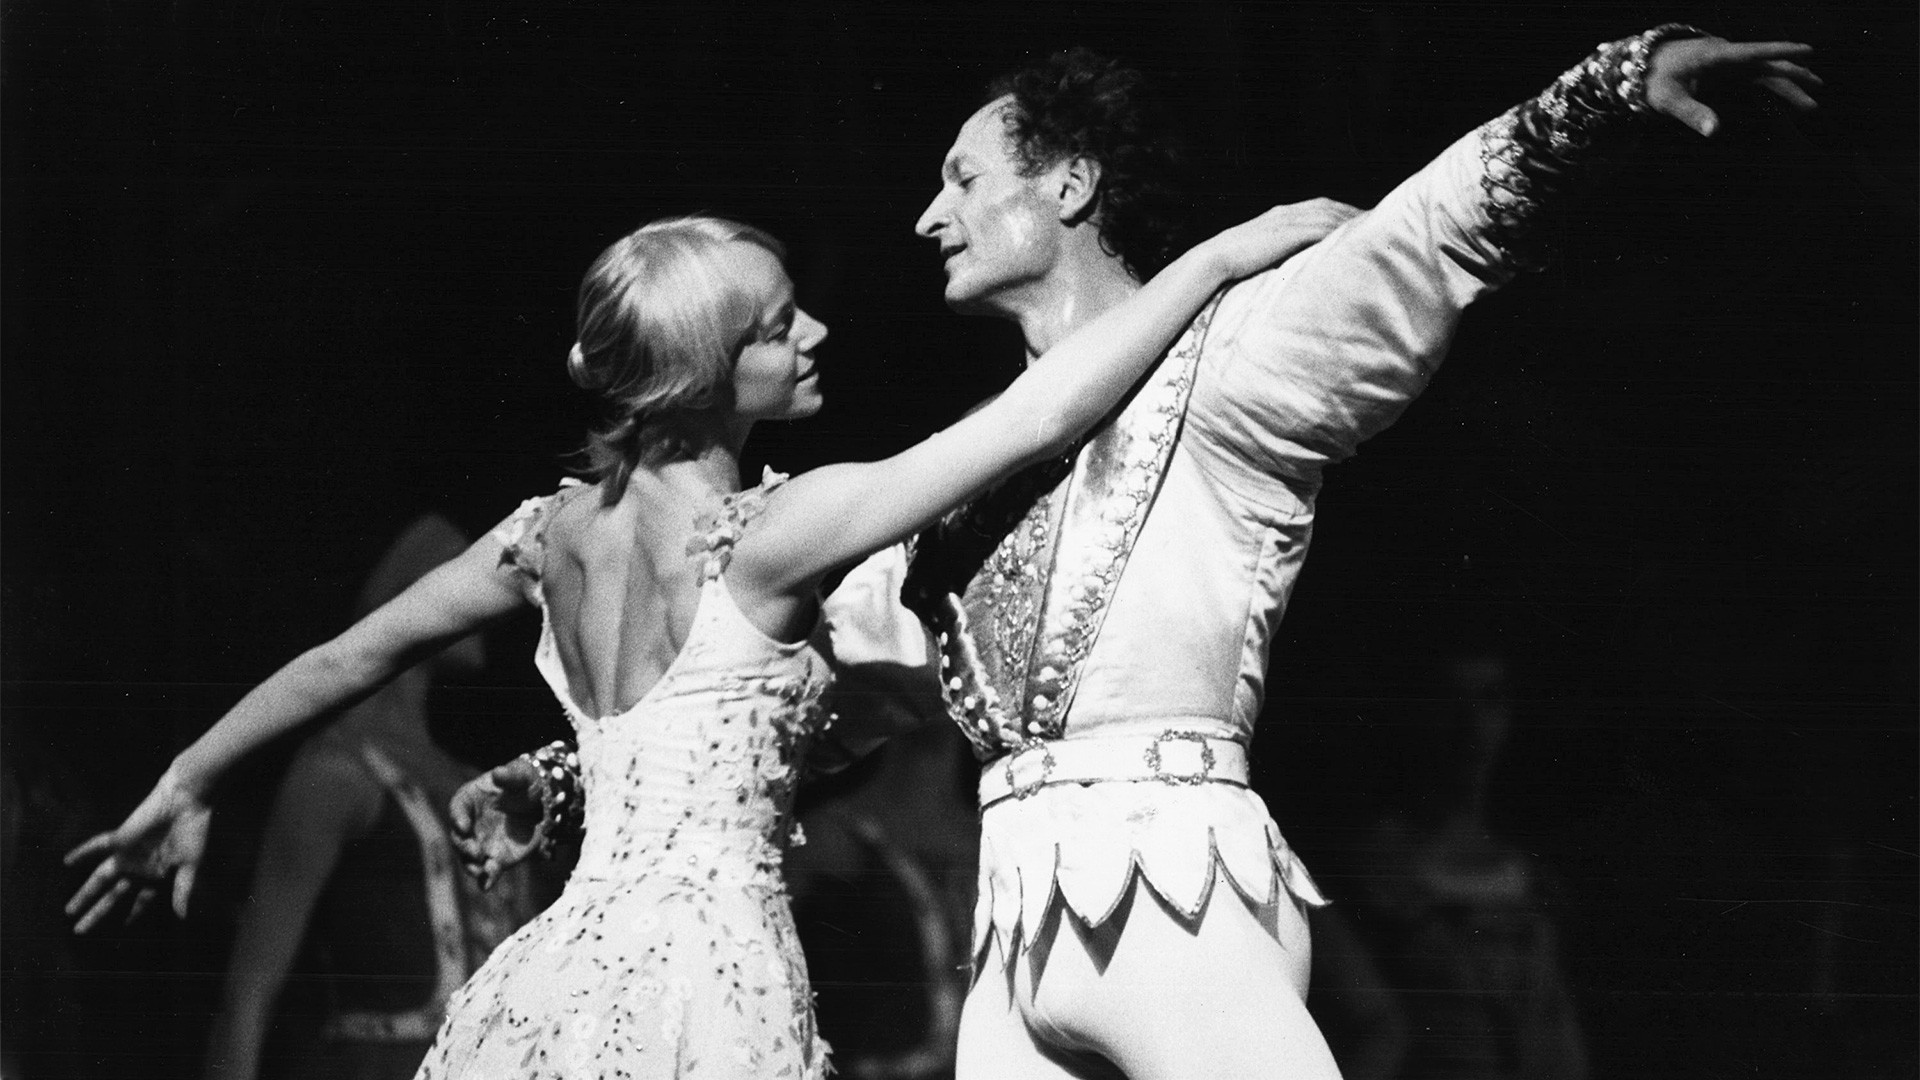 "Russian dancers Galina Panova and her husband Valery Panov are pictured during rehearsal with the Berlin Opera Ballet Production of ""Cinderella"" at the New York State Theater of the Lincoln Center for the performing arts, July 6, 1978."